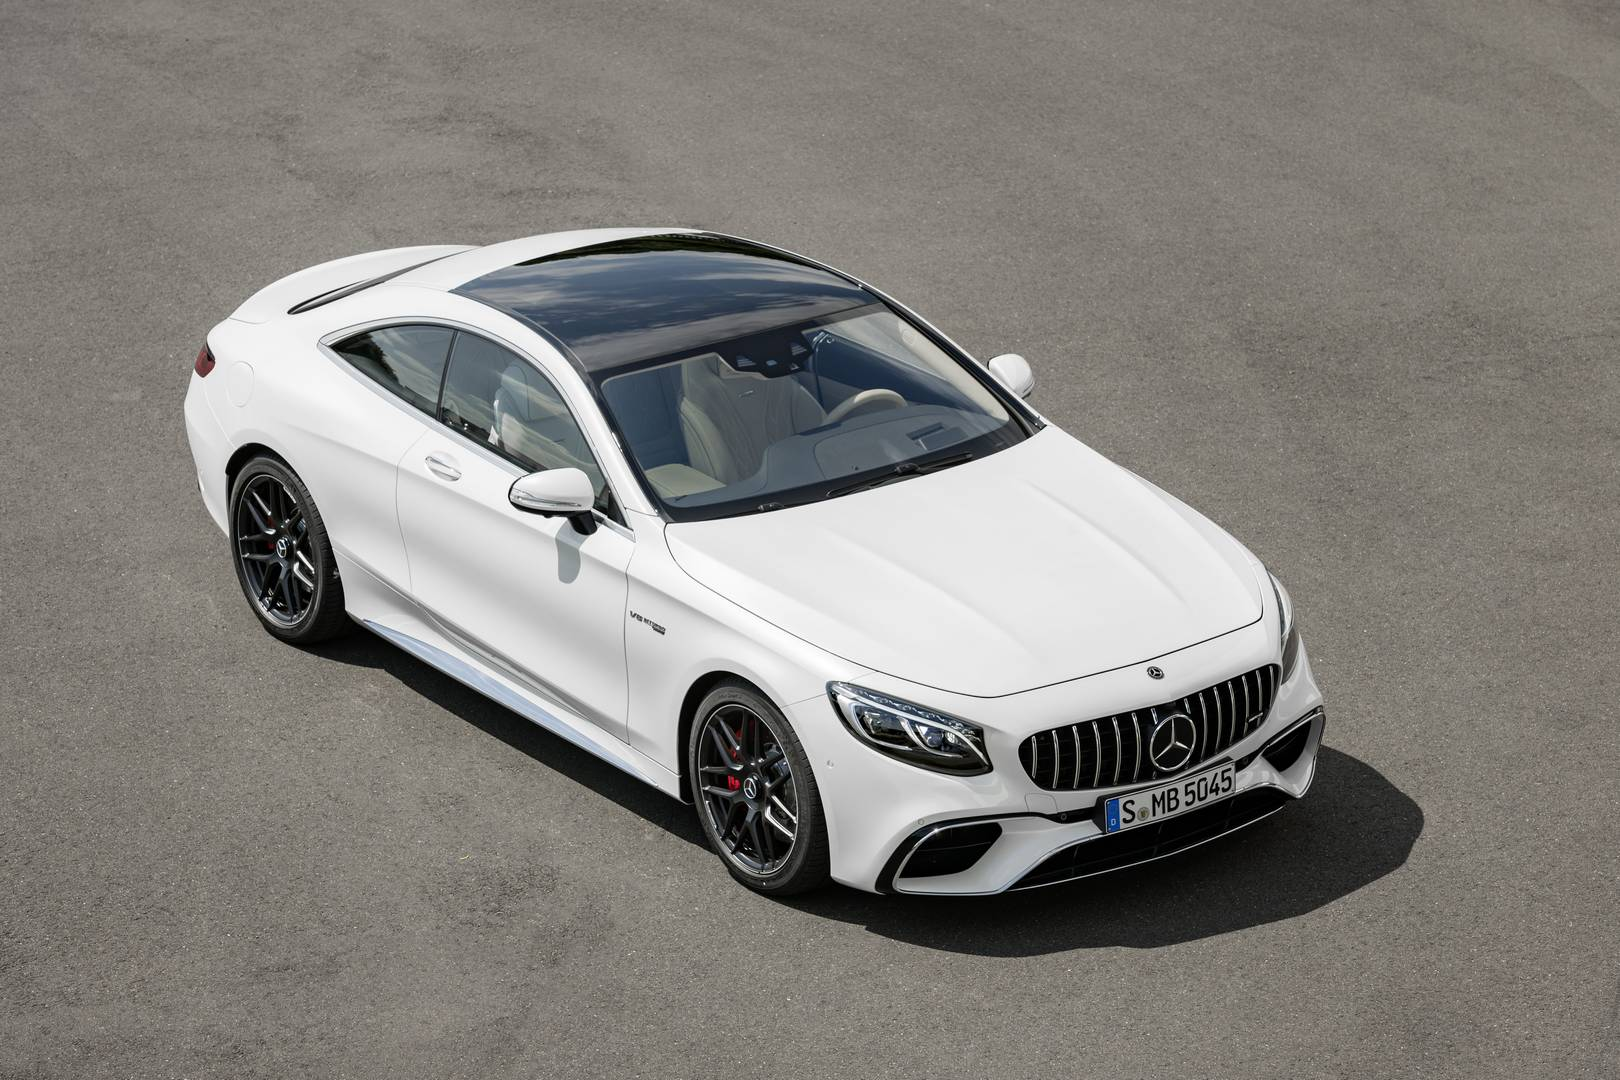 official 2018 mercedes amg s63 and s65 coupe cabriolet facelift gtspirit. Black Bedroom Furniture Sets. Home Design Ideas